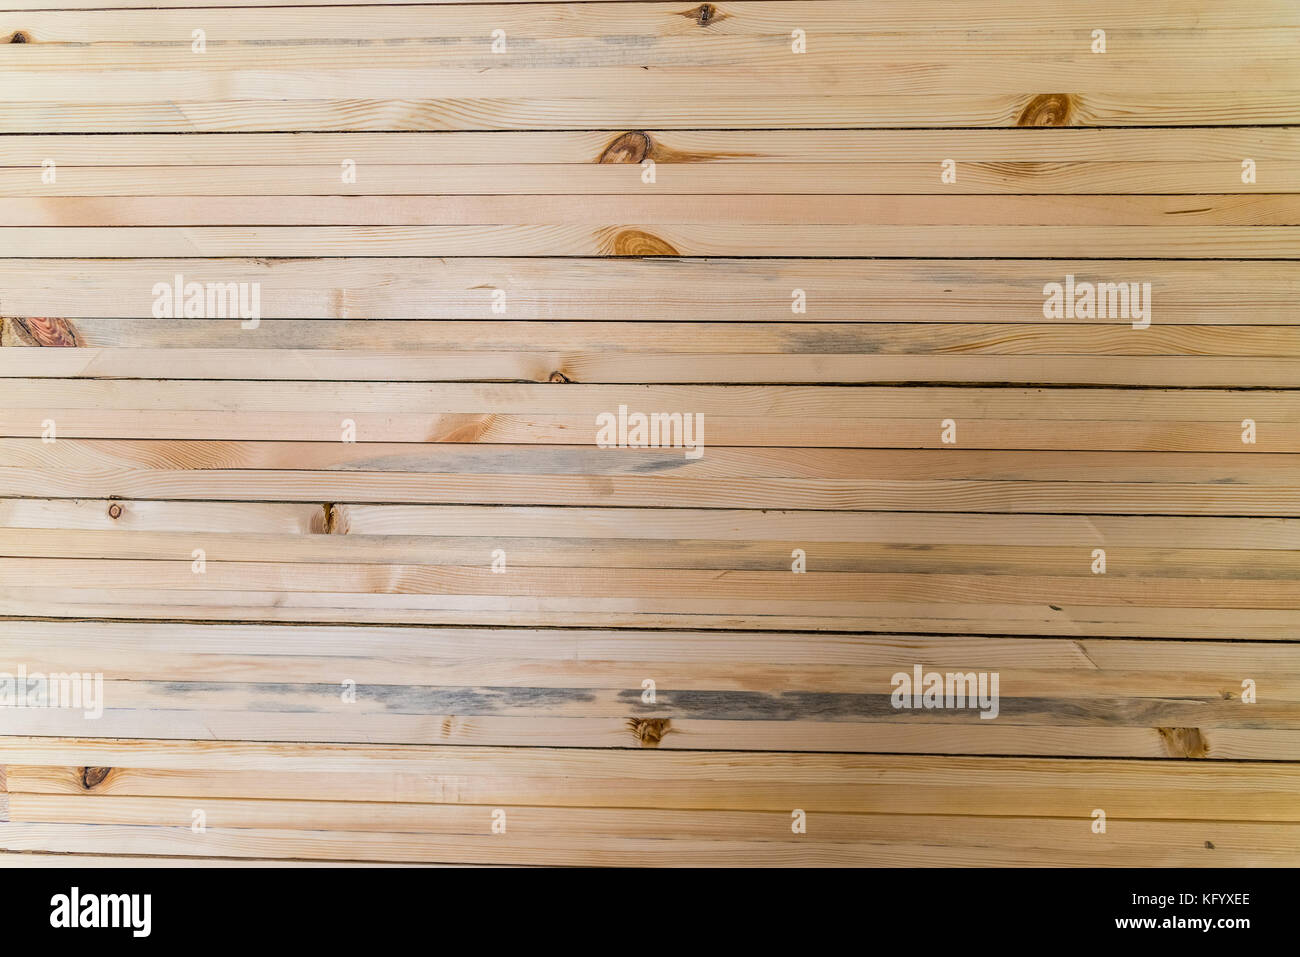 Wooden planks background - Stock Image